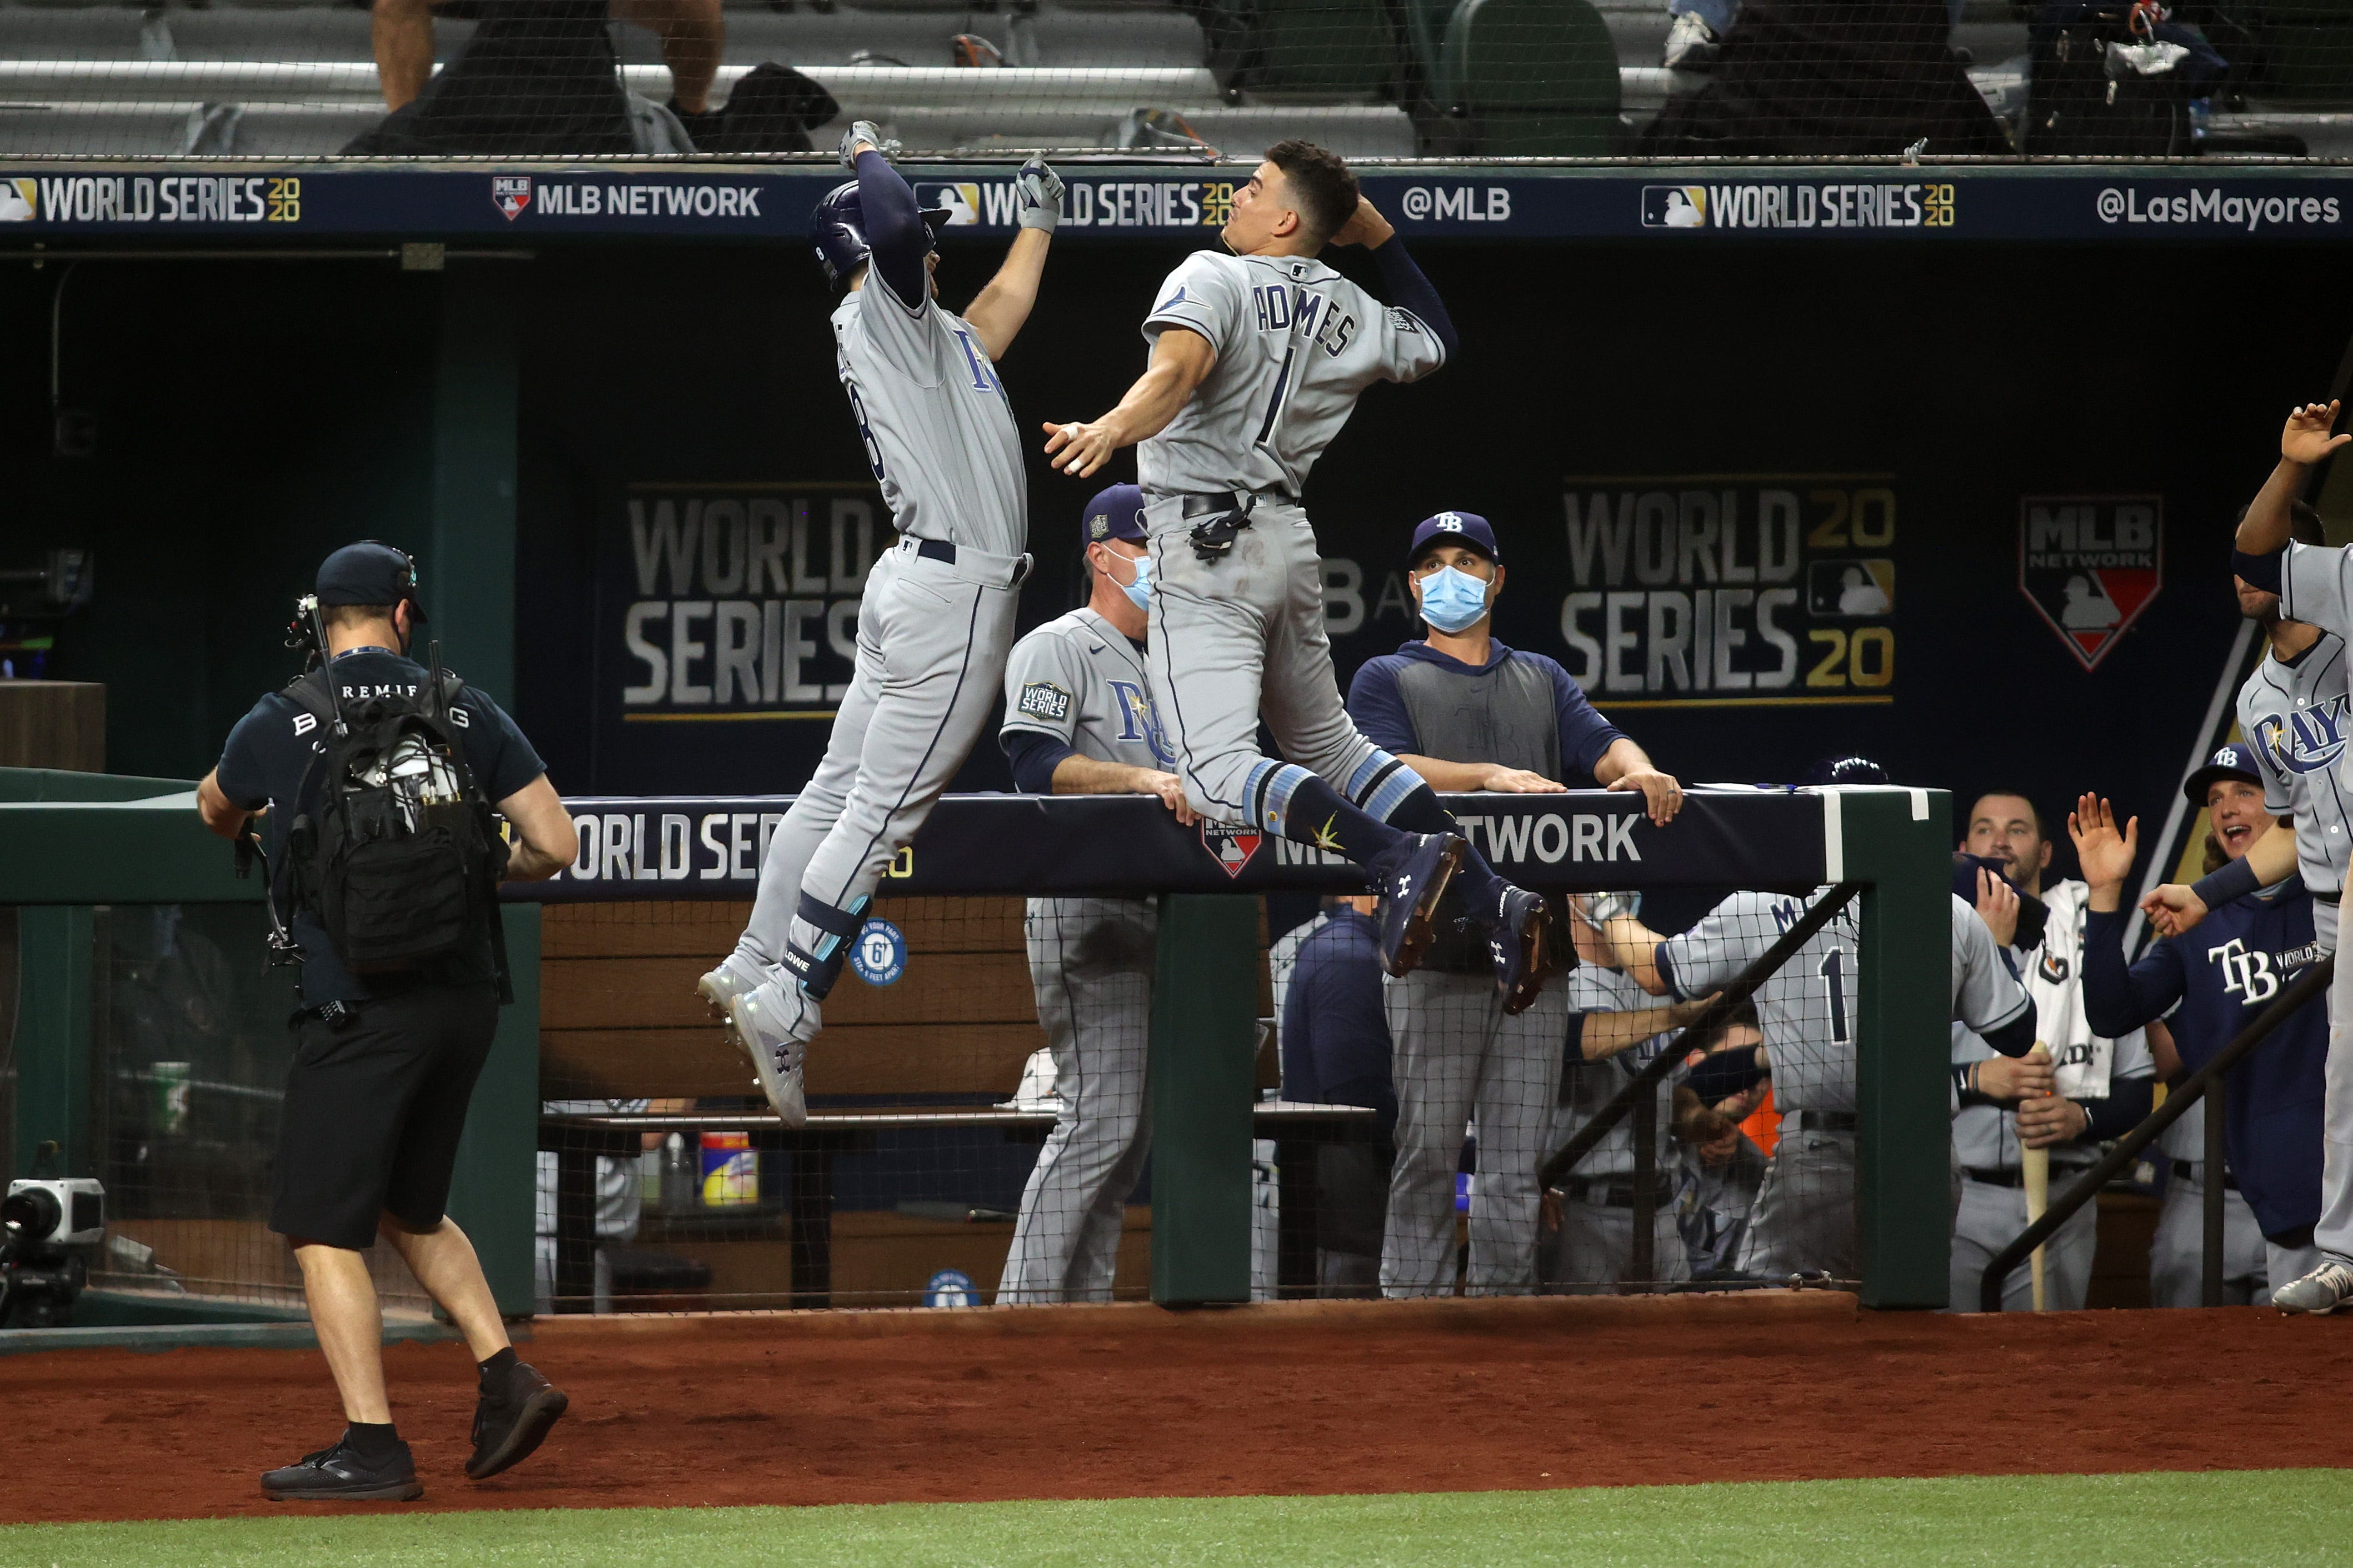 Rays offense wakes up in Game 2 to even World Series against Dodgers